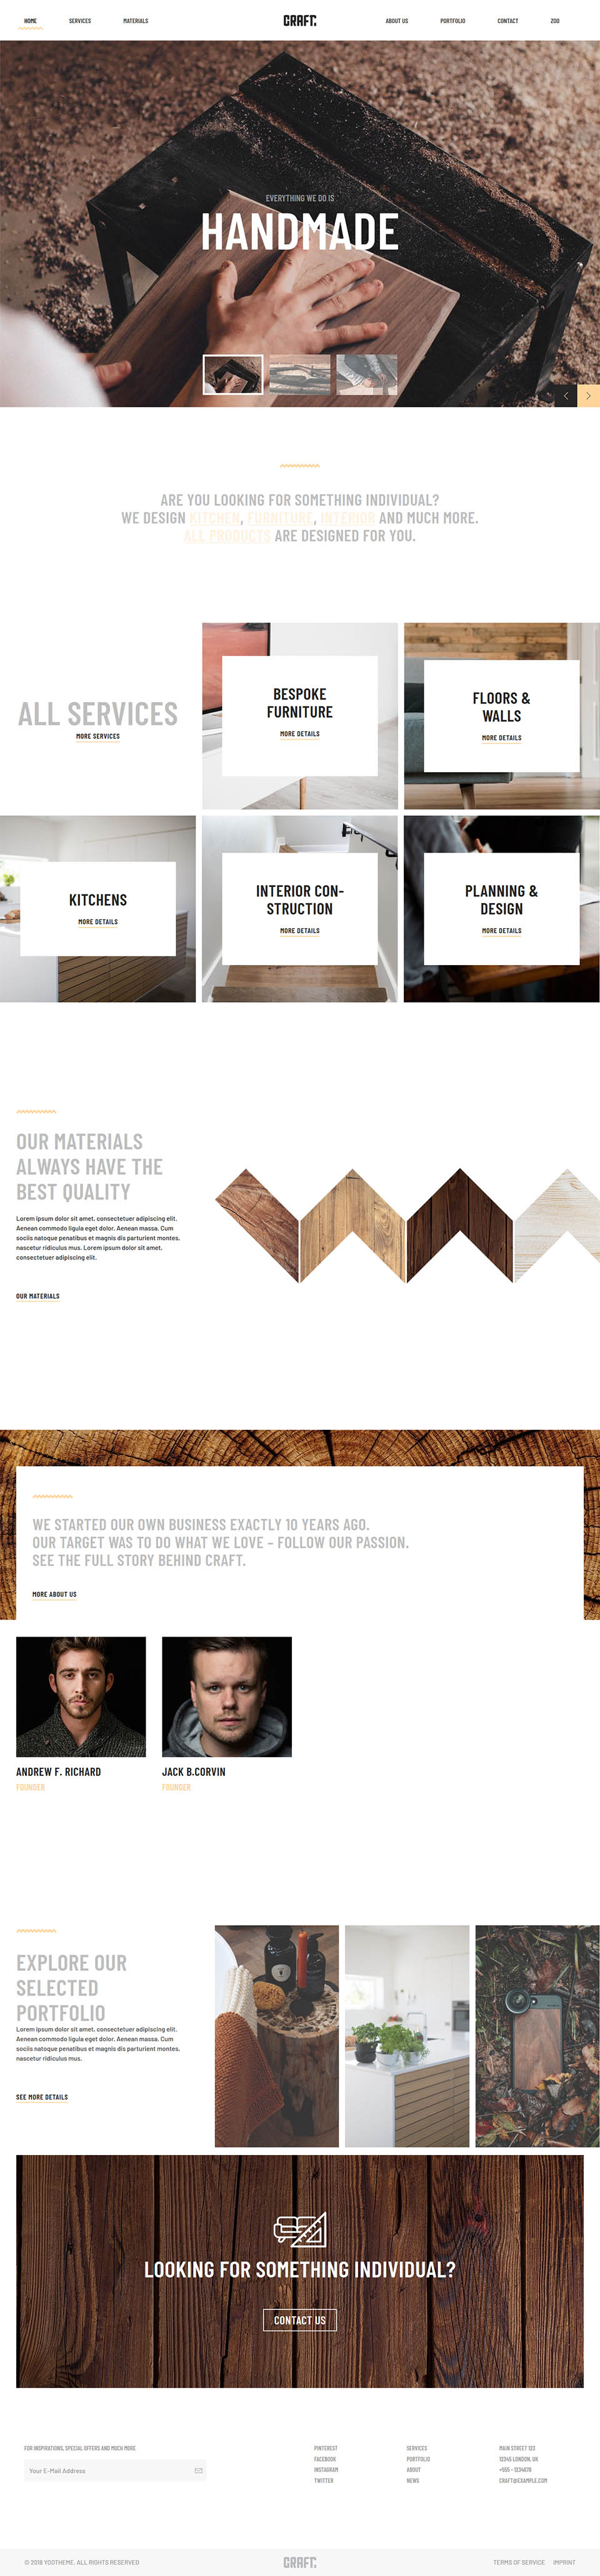 YOOtheme Craft v1 21 6 - company template for the manufacture of